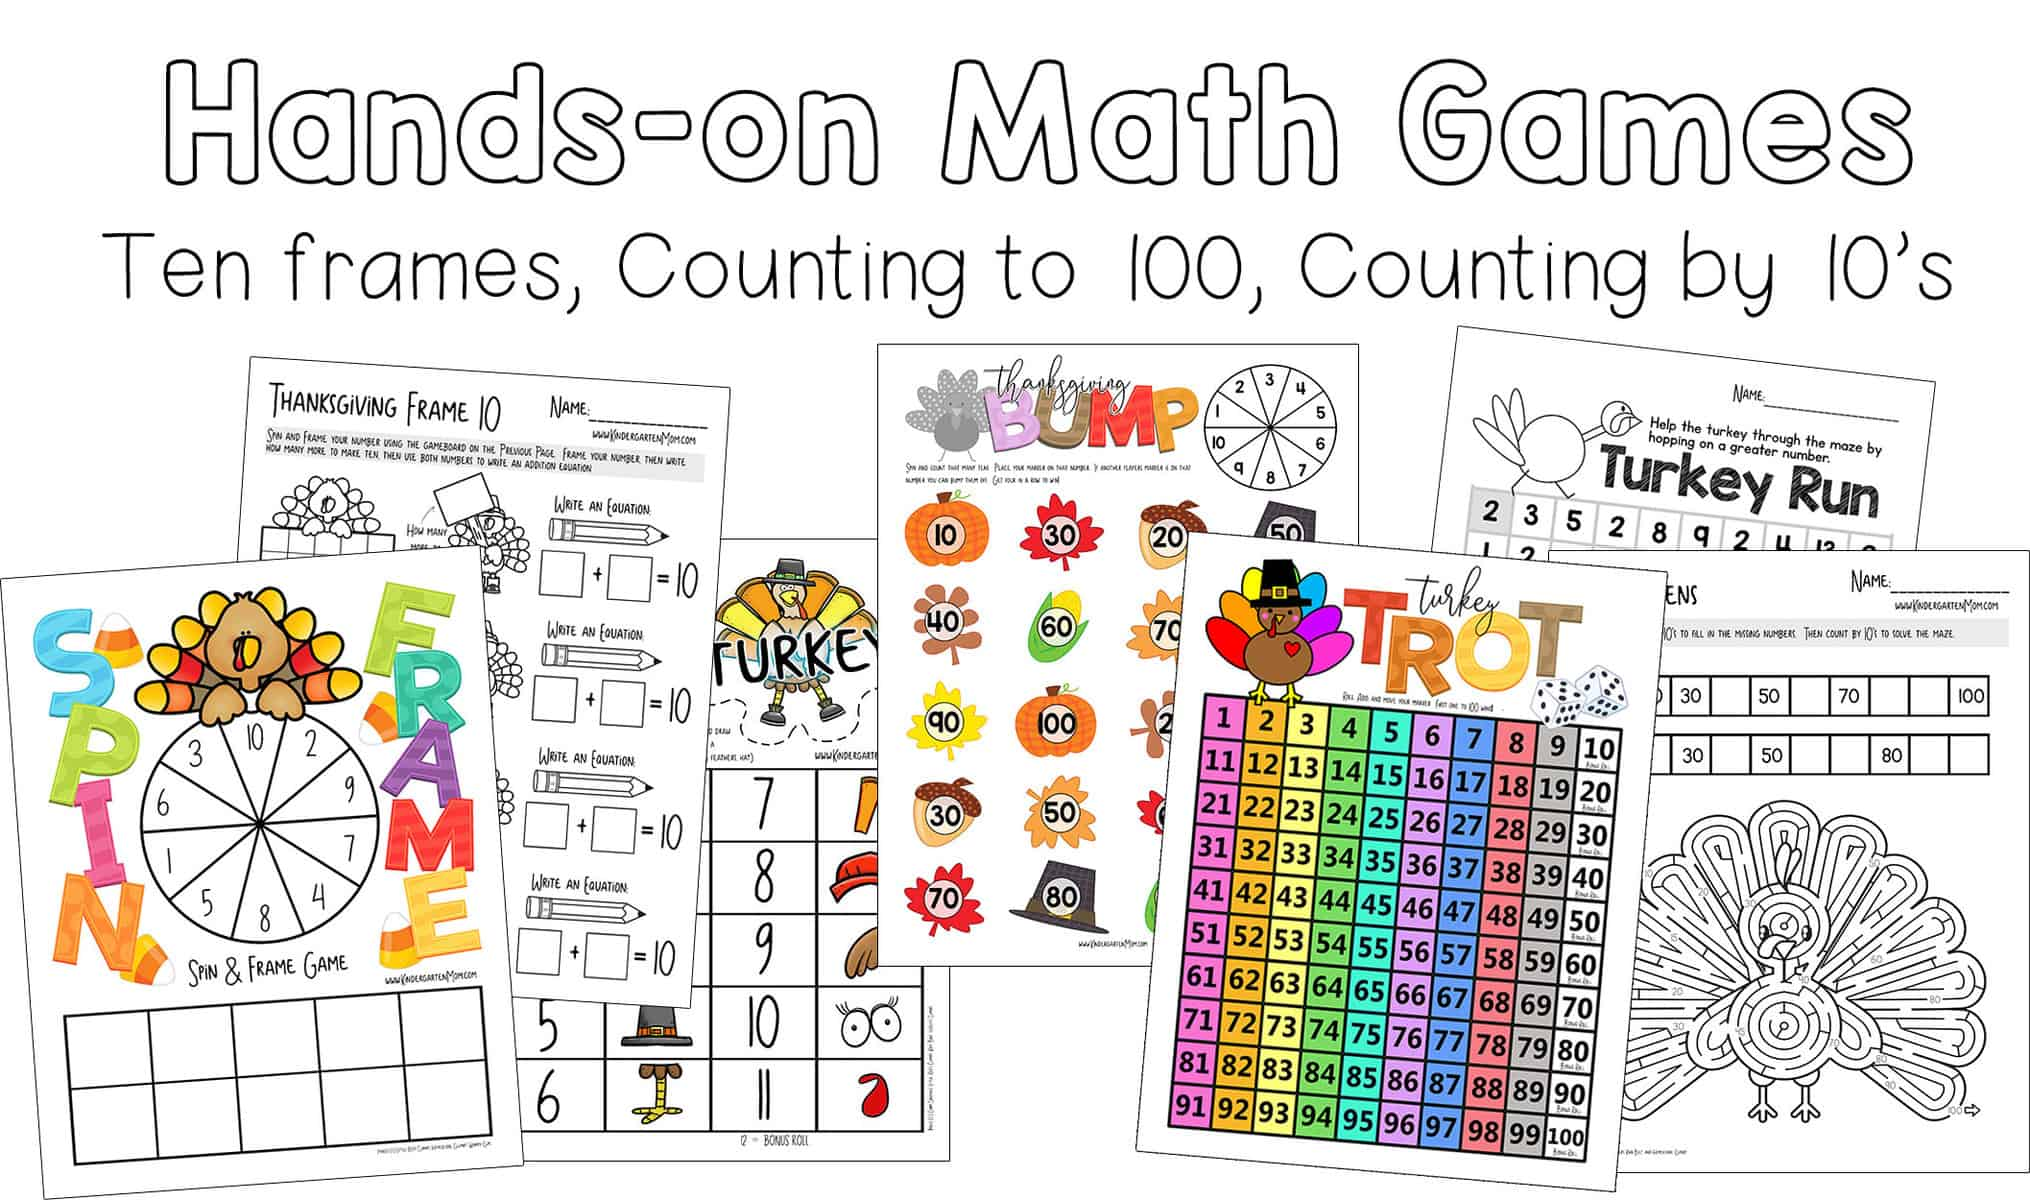 Printables archives thanksgiving math each day students will play a fun game or activity then follow up their learning with a lesson sheet to show mastery urtaz Image collections